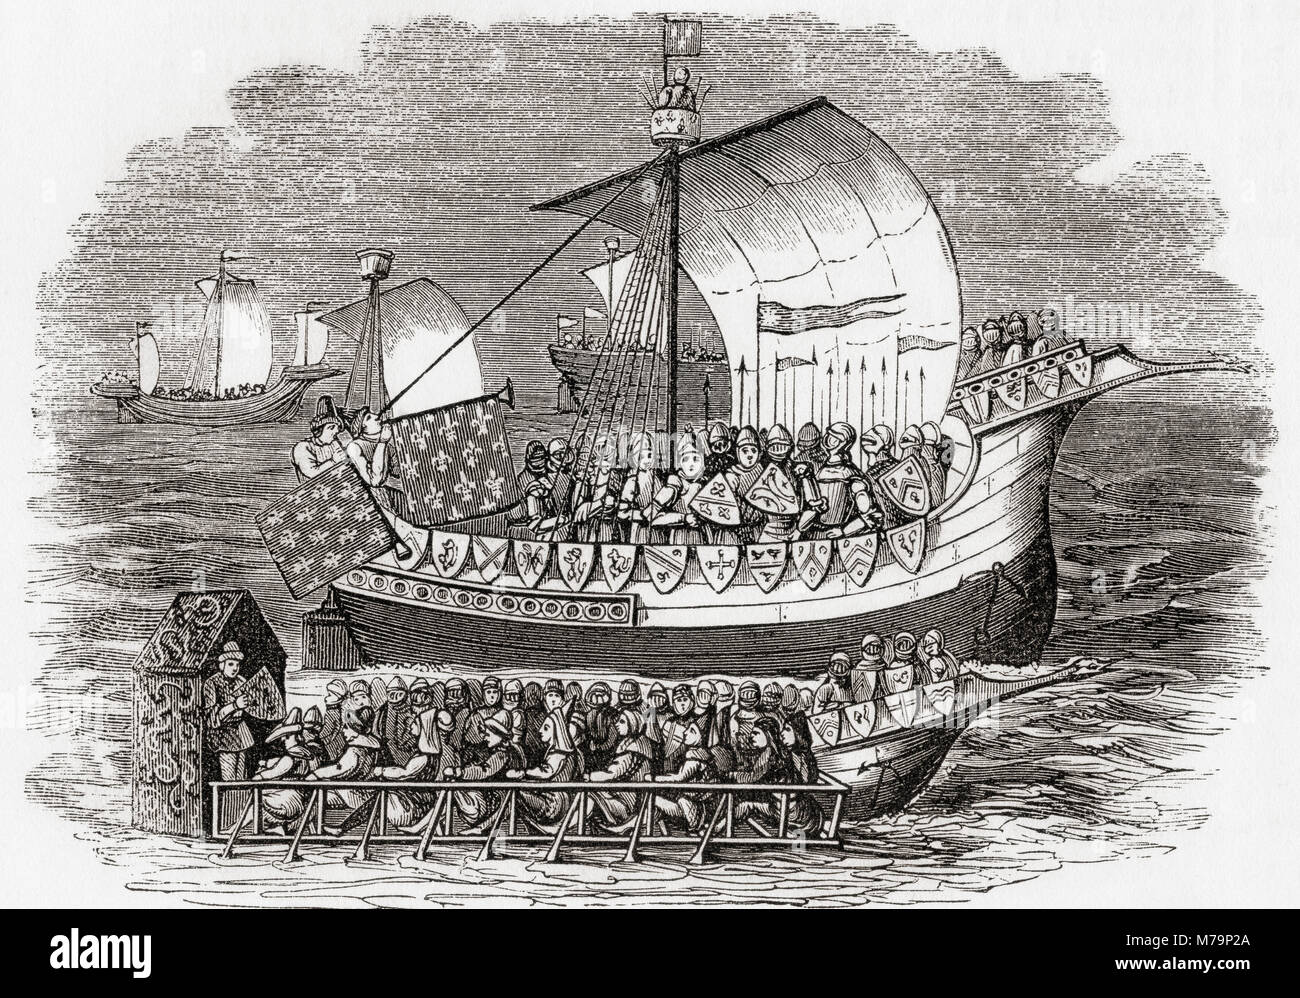 English ships of war from the 15th century.  From Old England: A Pictorial Museum, published 1847. - Stock Image